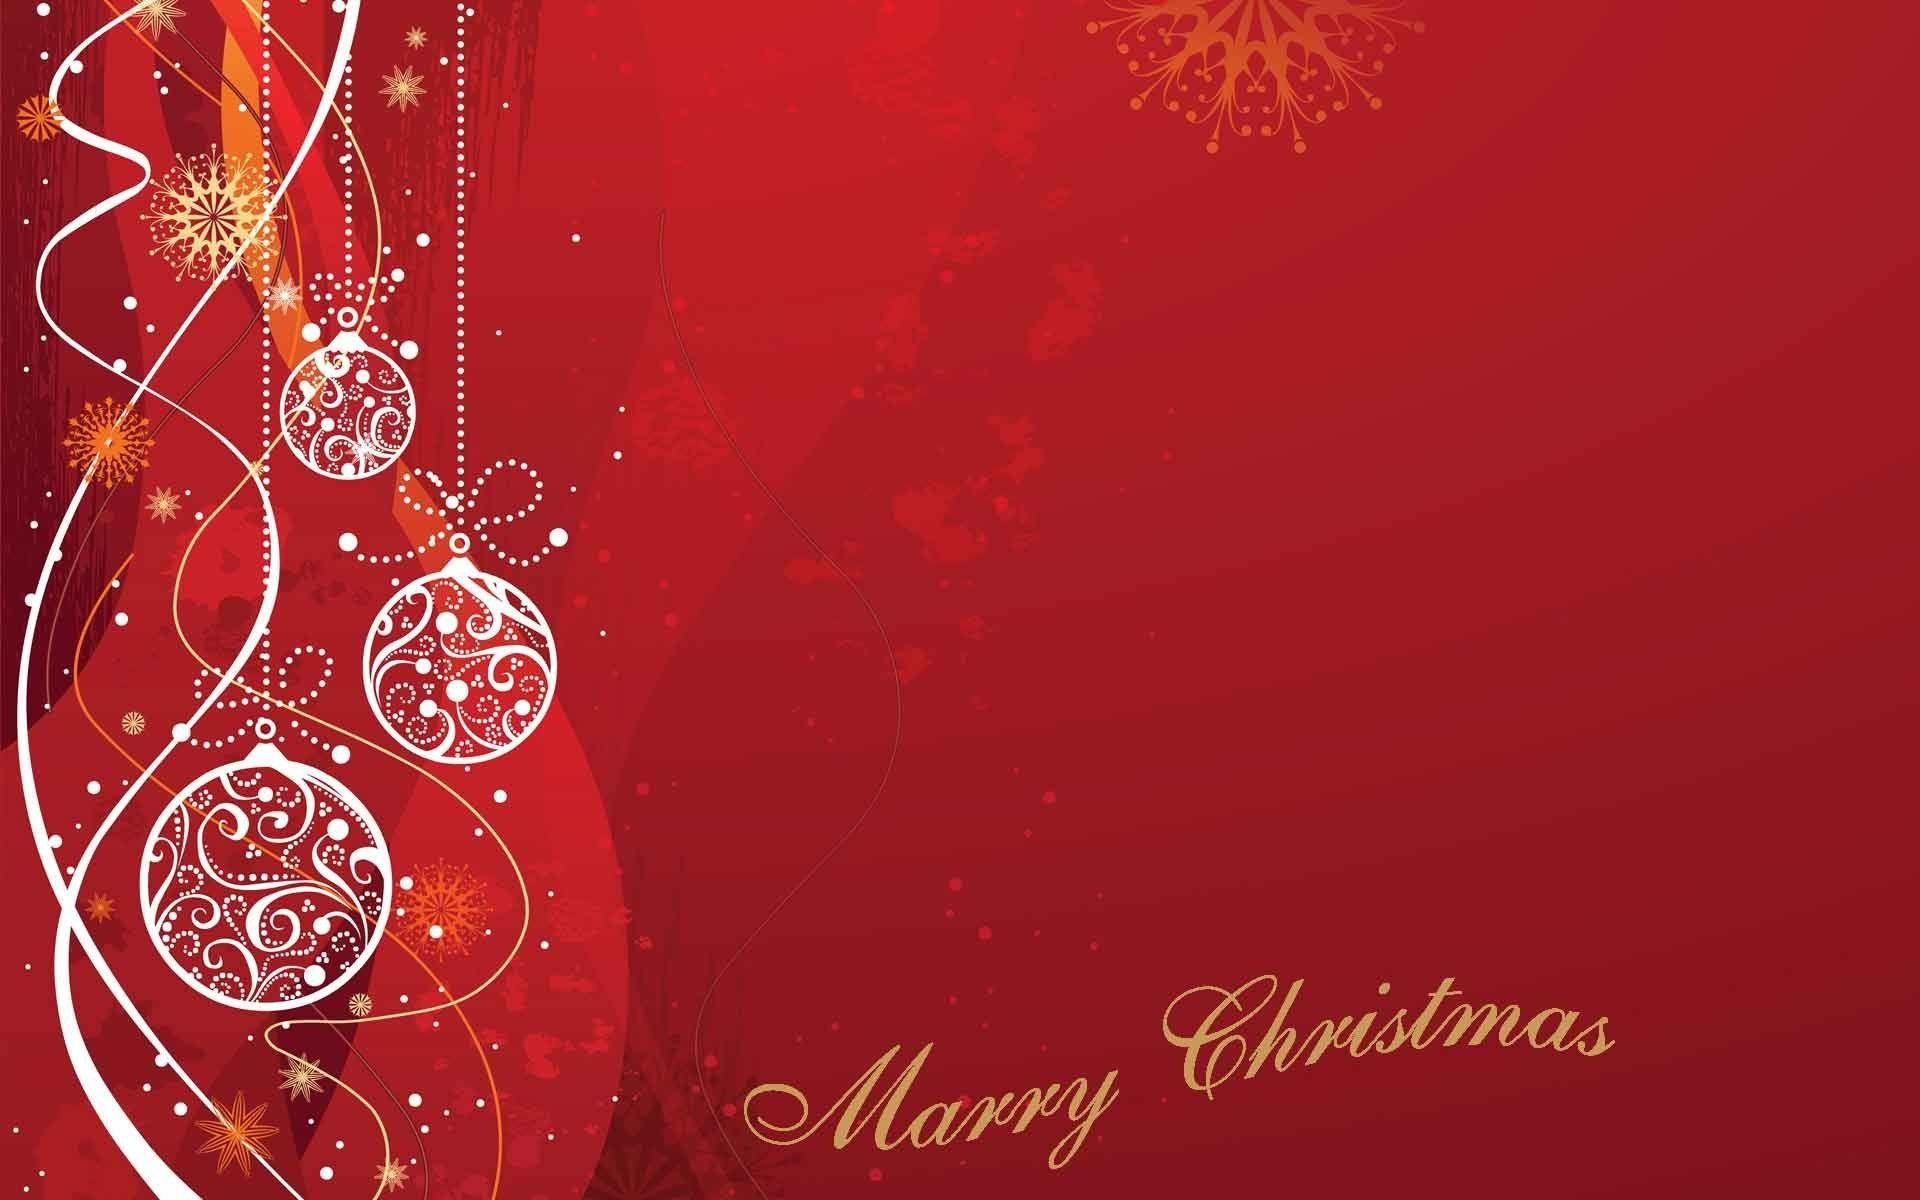 Christmas Cards And Gifts Wallpapers Wallpaper Cave - Christmas card templates for photoshop